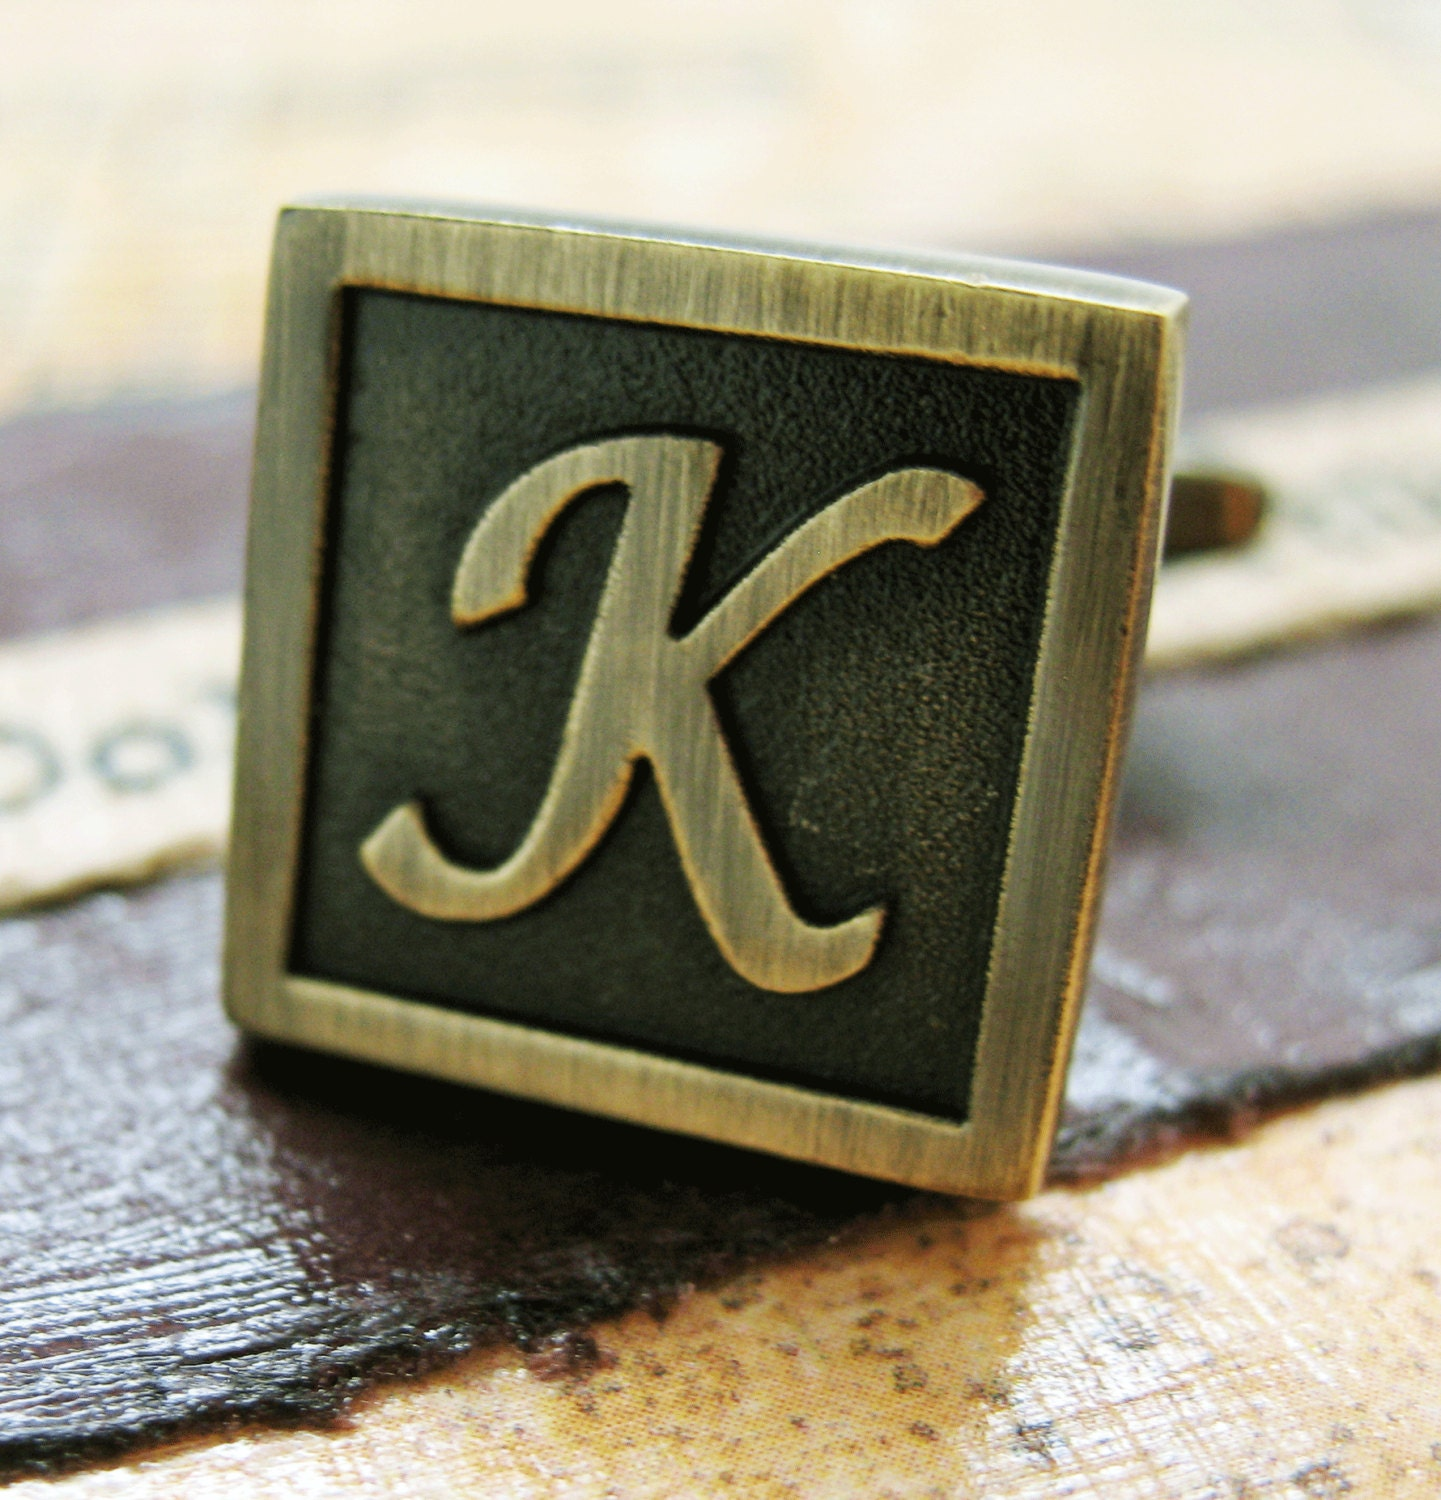 k initial cufflinks antique brass square 3 d letter k vintage english lettering cuff links